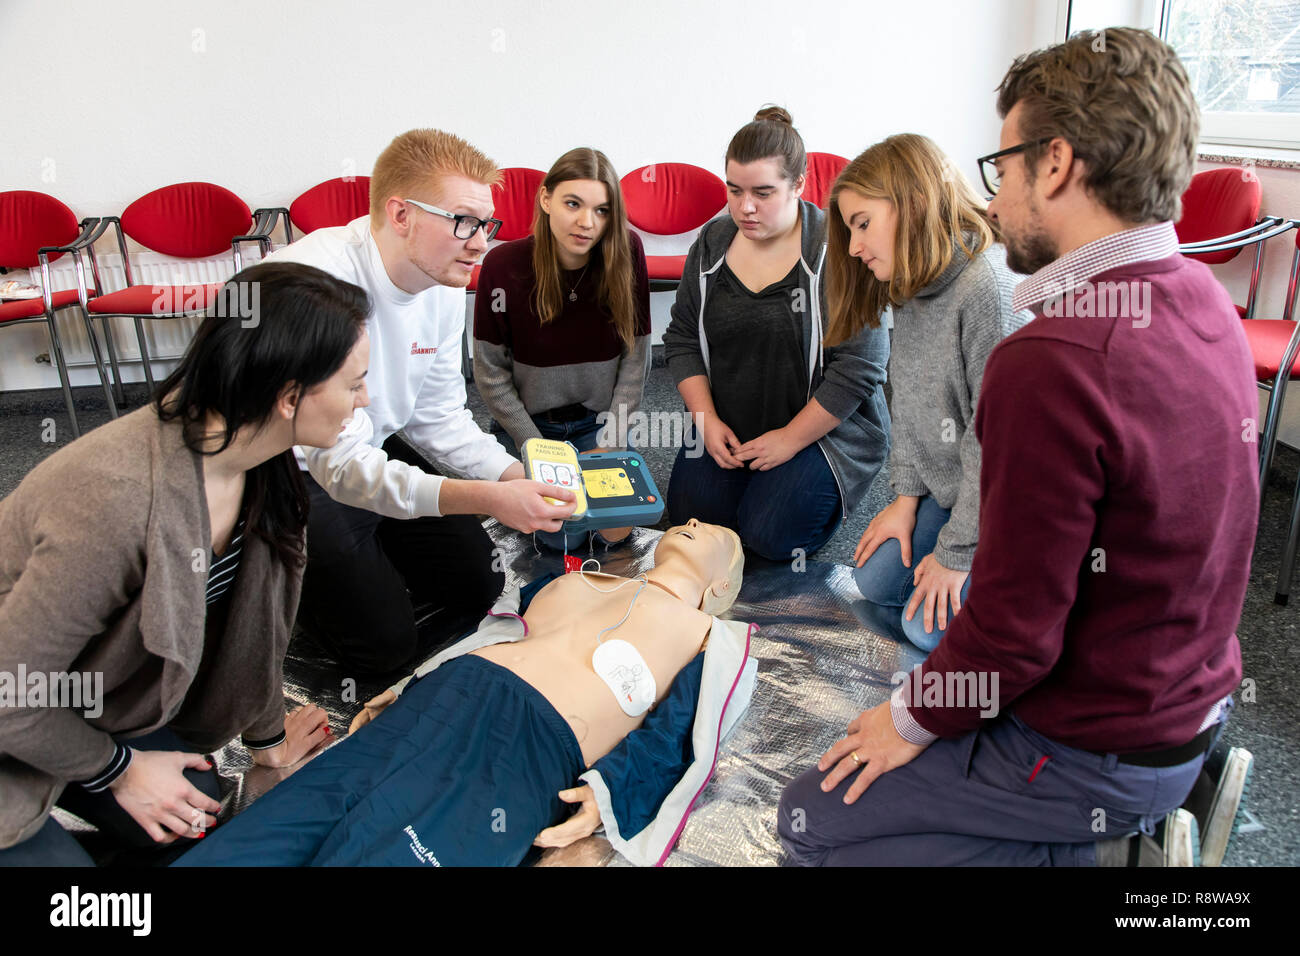 First Aid Course, First Aid Training, Emergencies, Practice Training, Resuscitation, Cardiac Arrest, Using AED, Automated External Defibrillation, - Stock Image